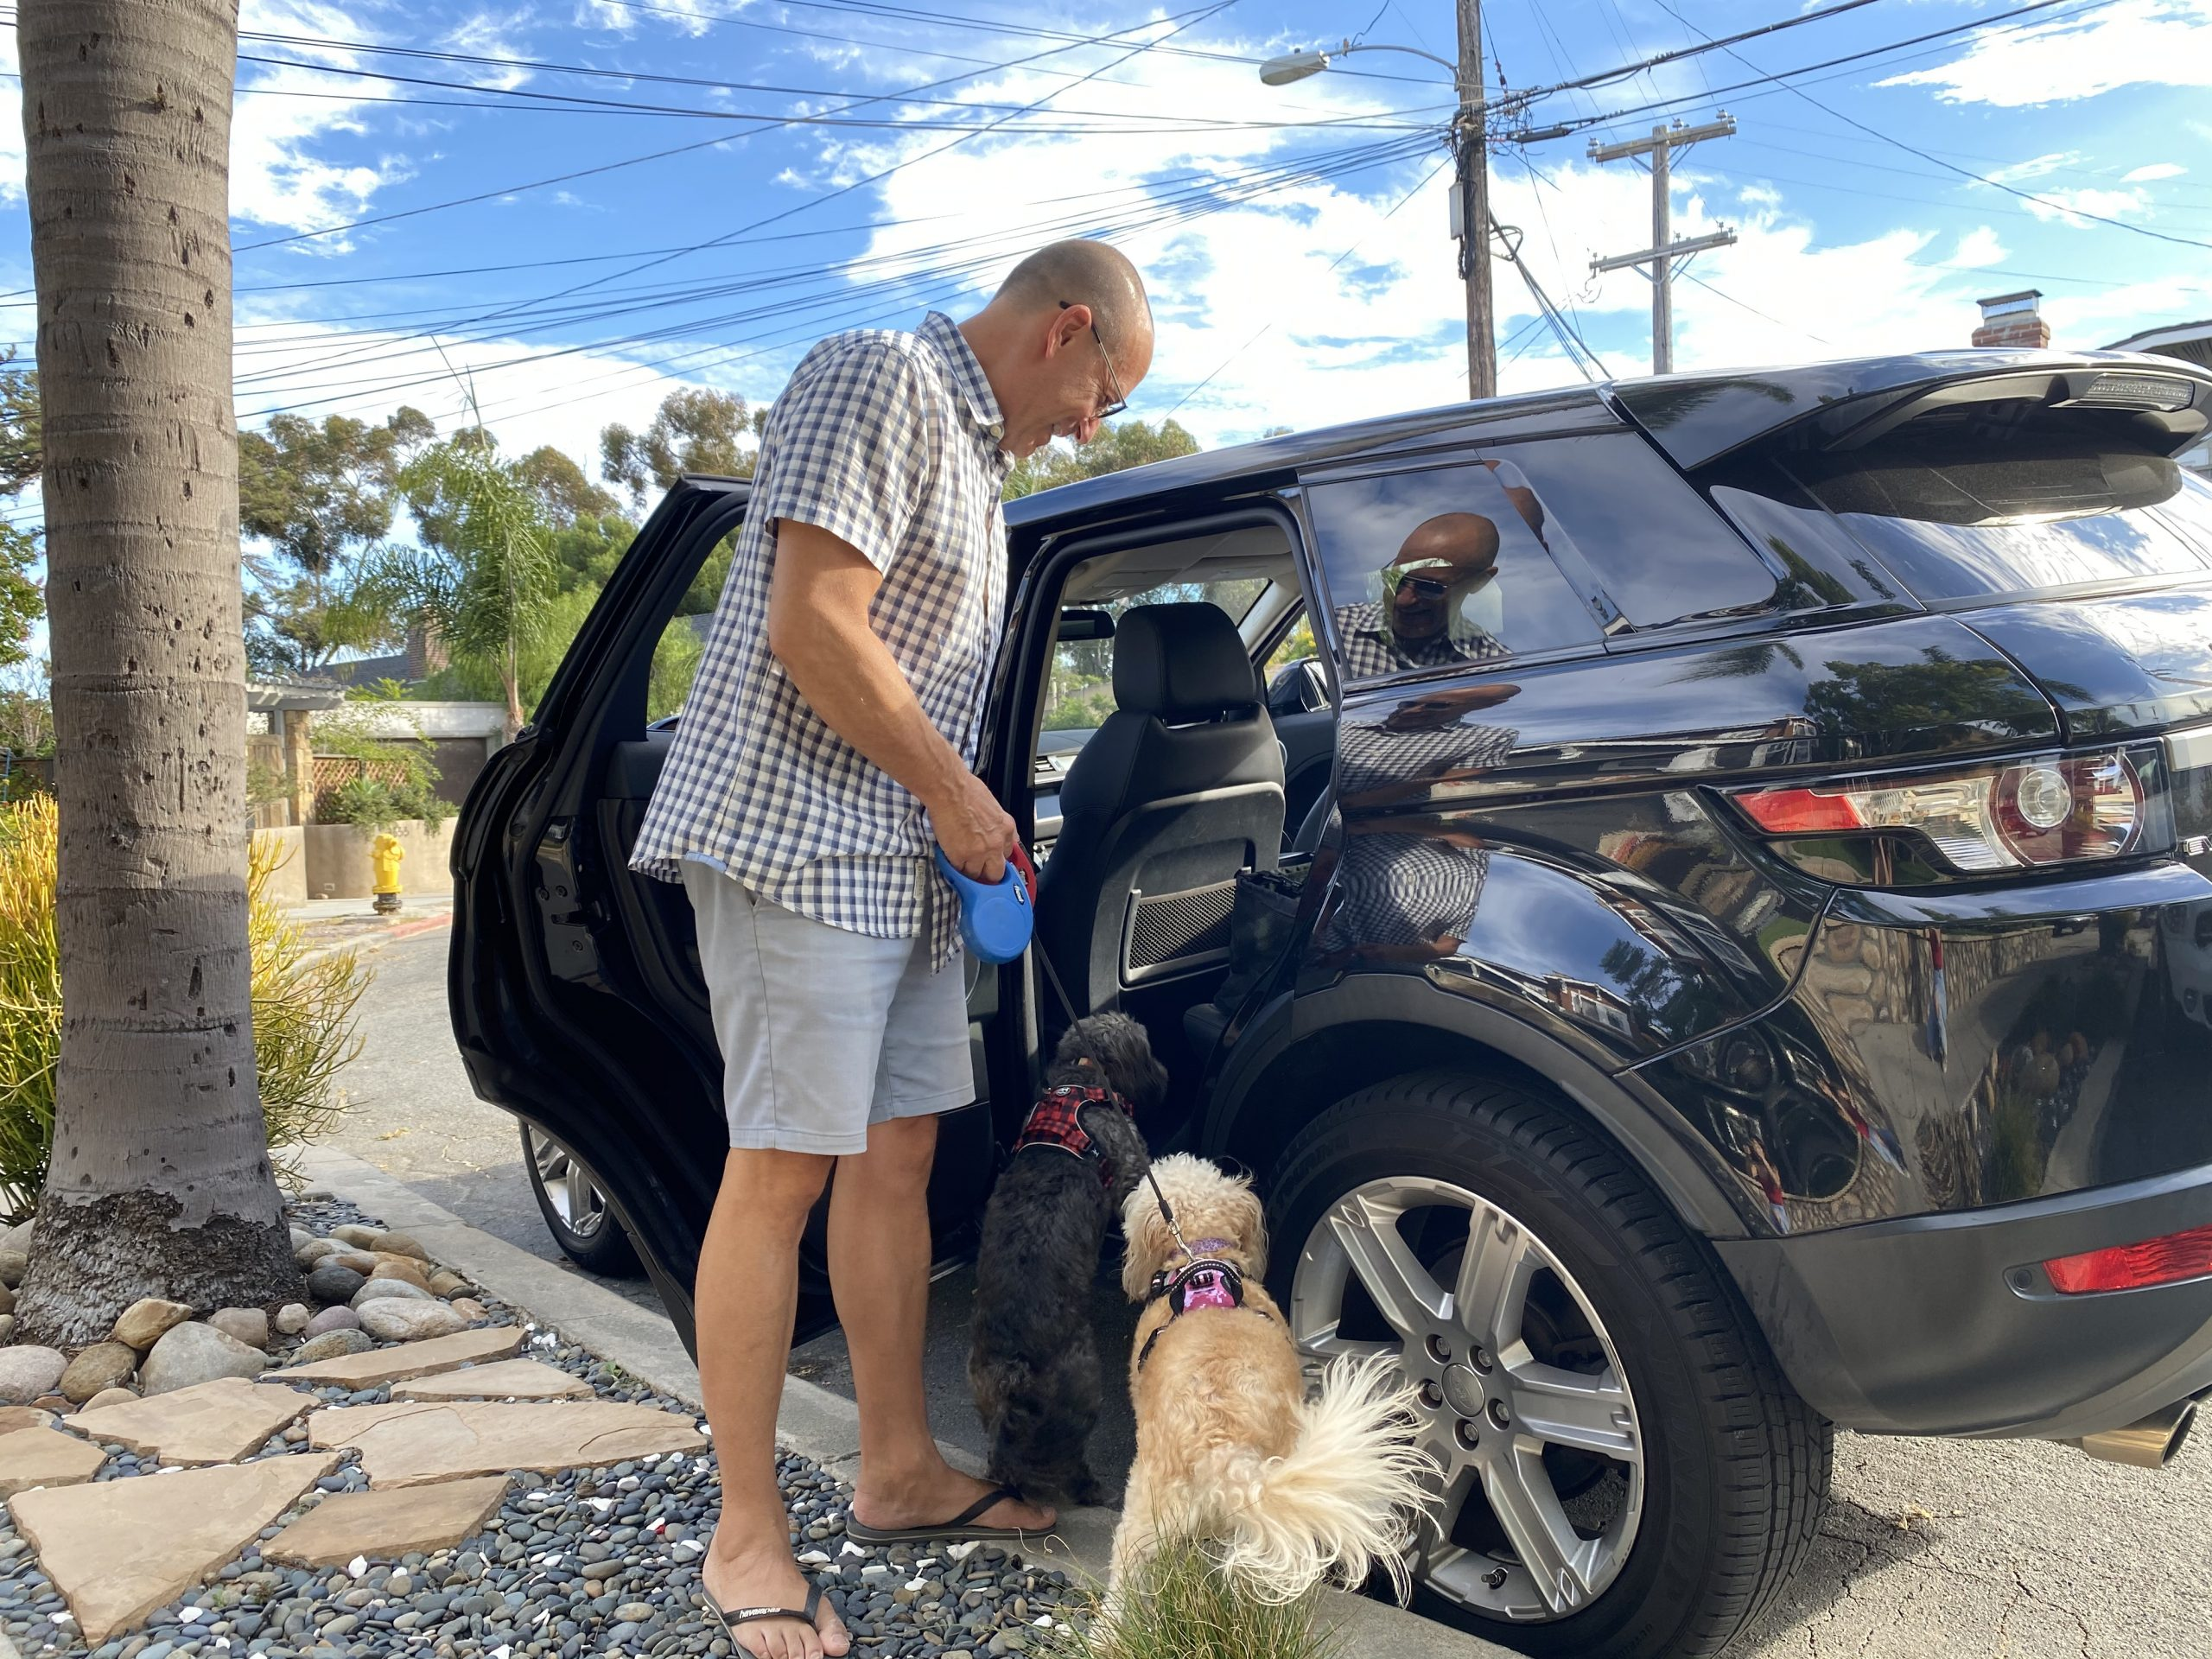 Man helps small dogs into back seat of car while parked curbside in neighborhood, San Diego, CA